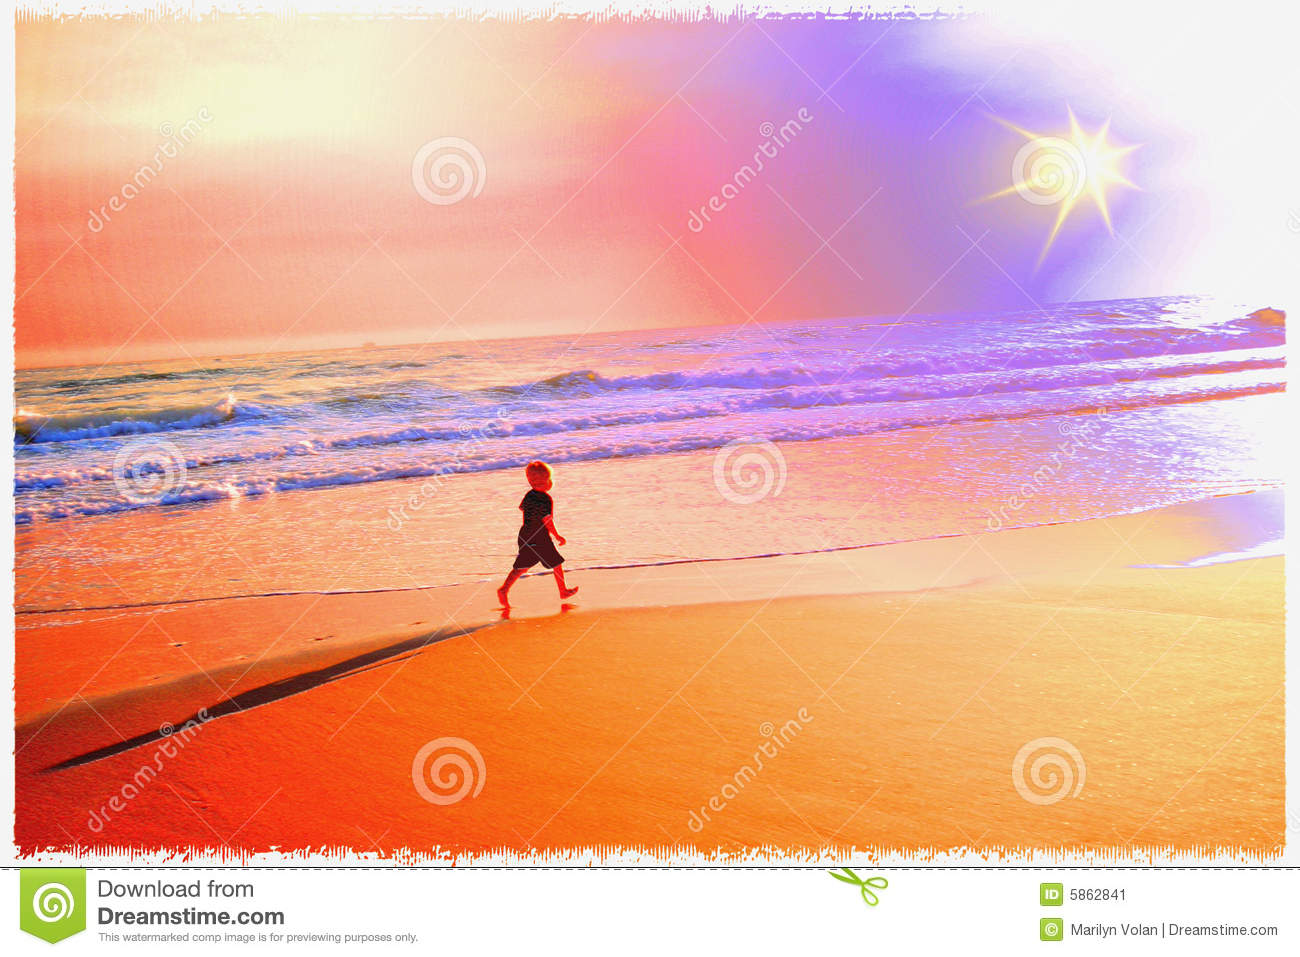 Pastel peaceful painting of little boy walking alone on the beach towards the setting sun